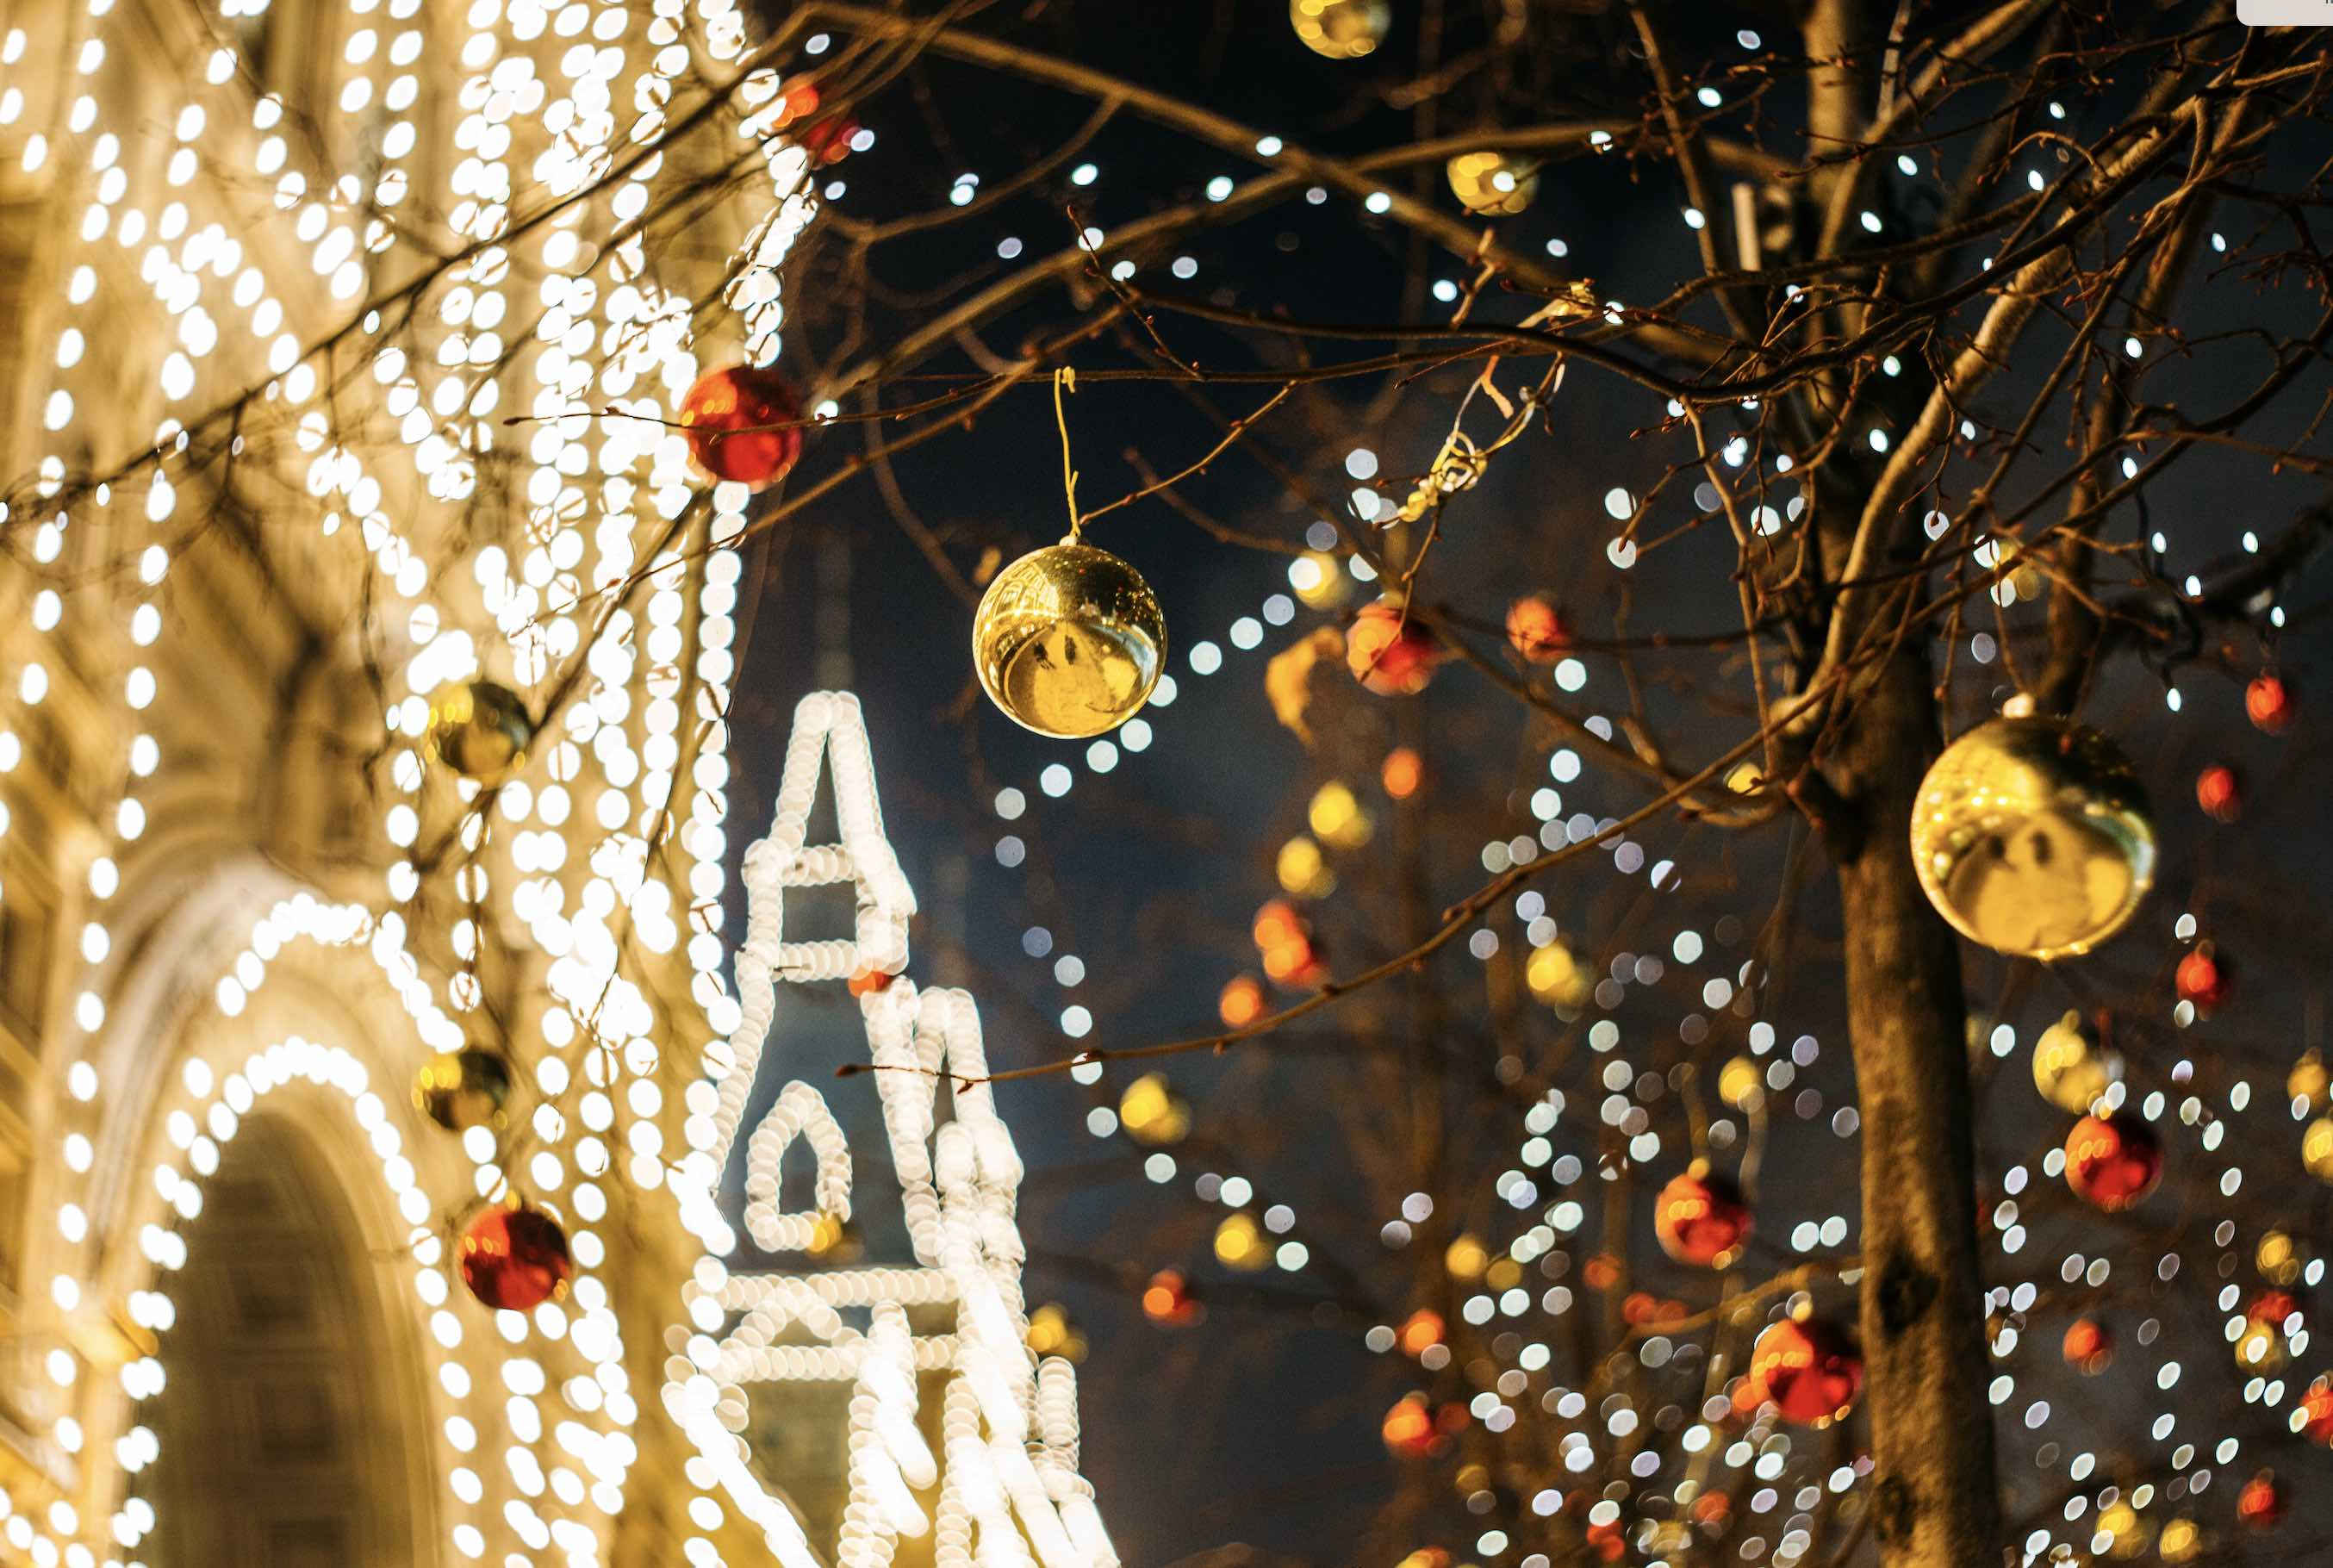 Boston Holiday Activities in December 2019